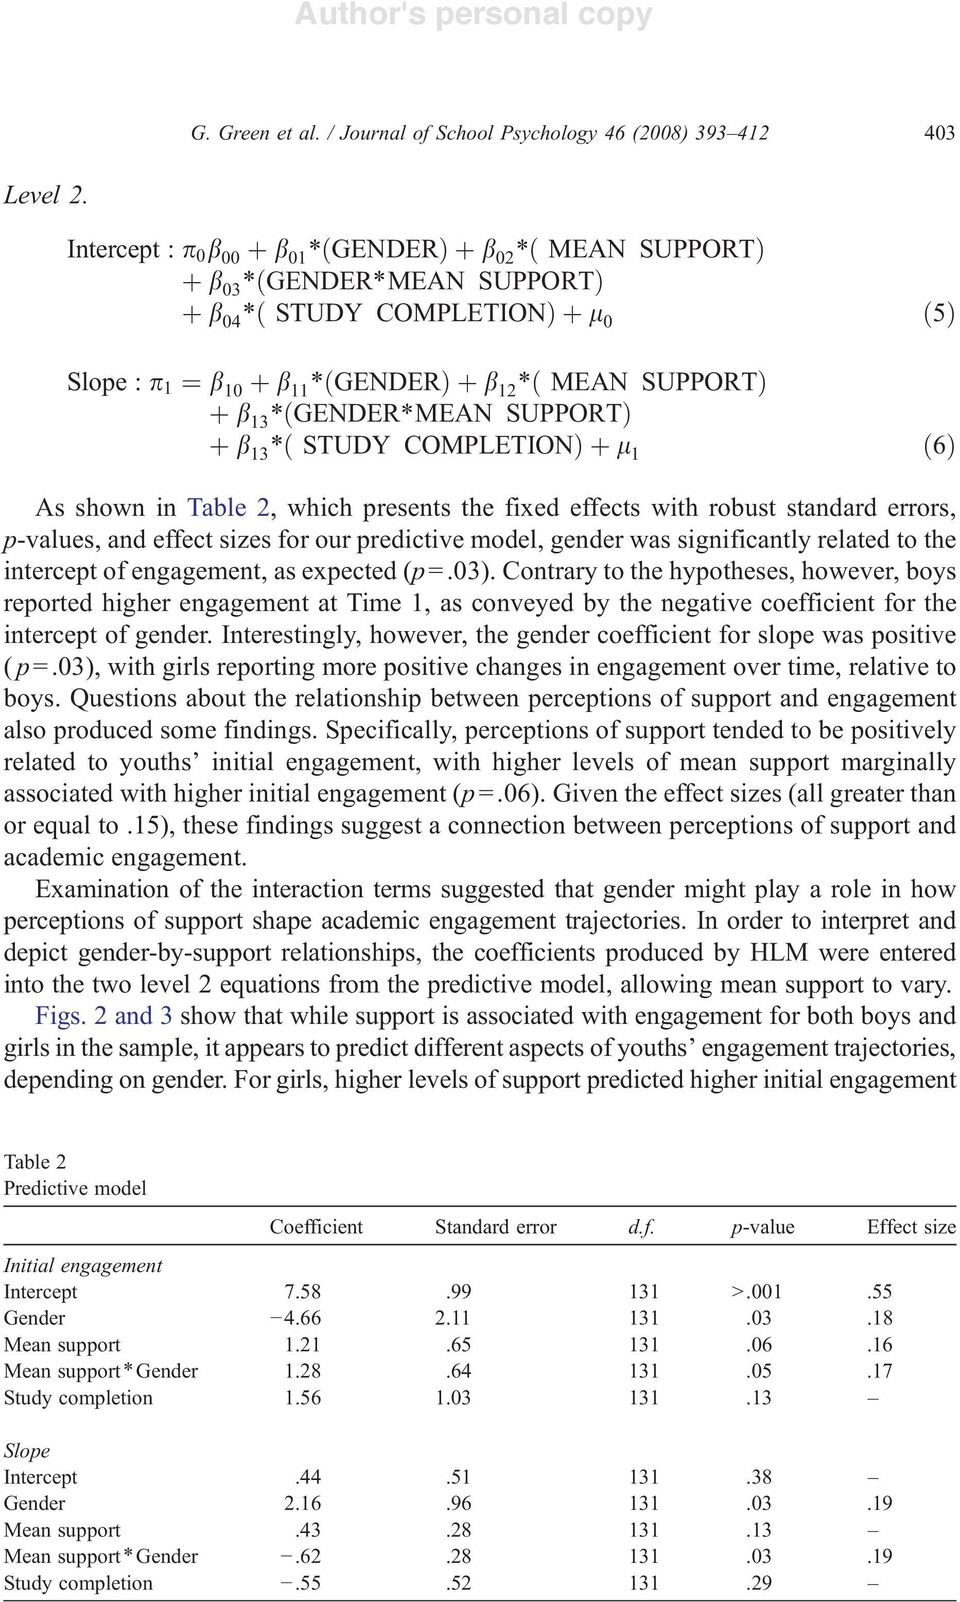 SUPPORTÞ þ b 13 ð STUDY COMPLETIONÞþl 1 ð5þ ð6þ As shown in Table 2, which presents the fixed effects with robust standard errors, p-values, and effect sizes for our predictive model, gender was